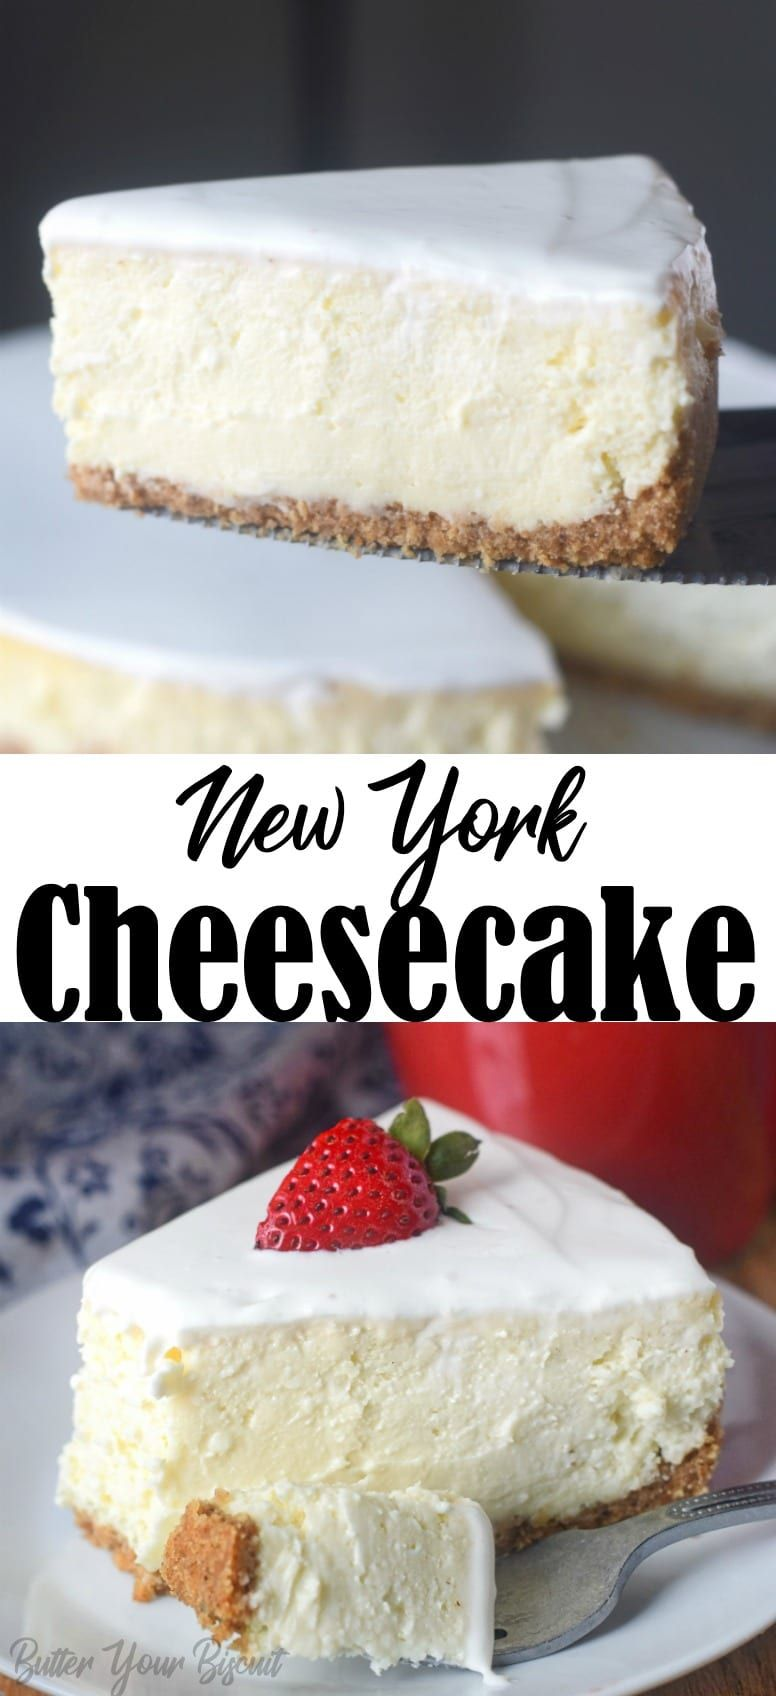 Rich And Creamy New York Cheesecake Butter Your Biscuit Recipe Easy Cheesecake Recipes Cheesecake Recipes Sour Cream Recipes